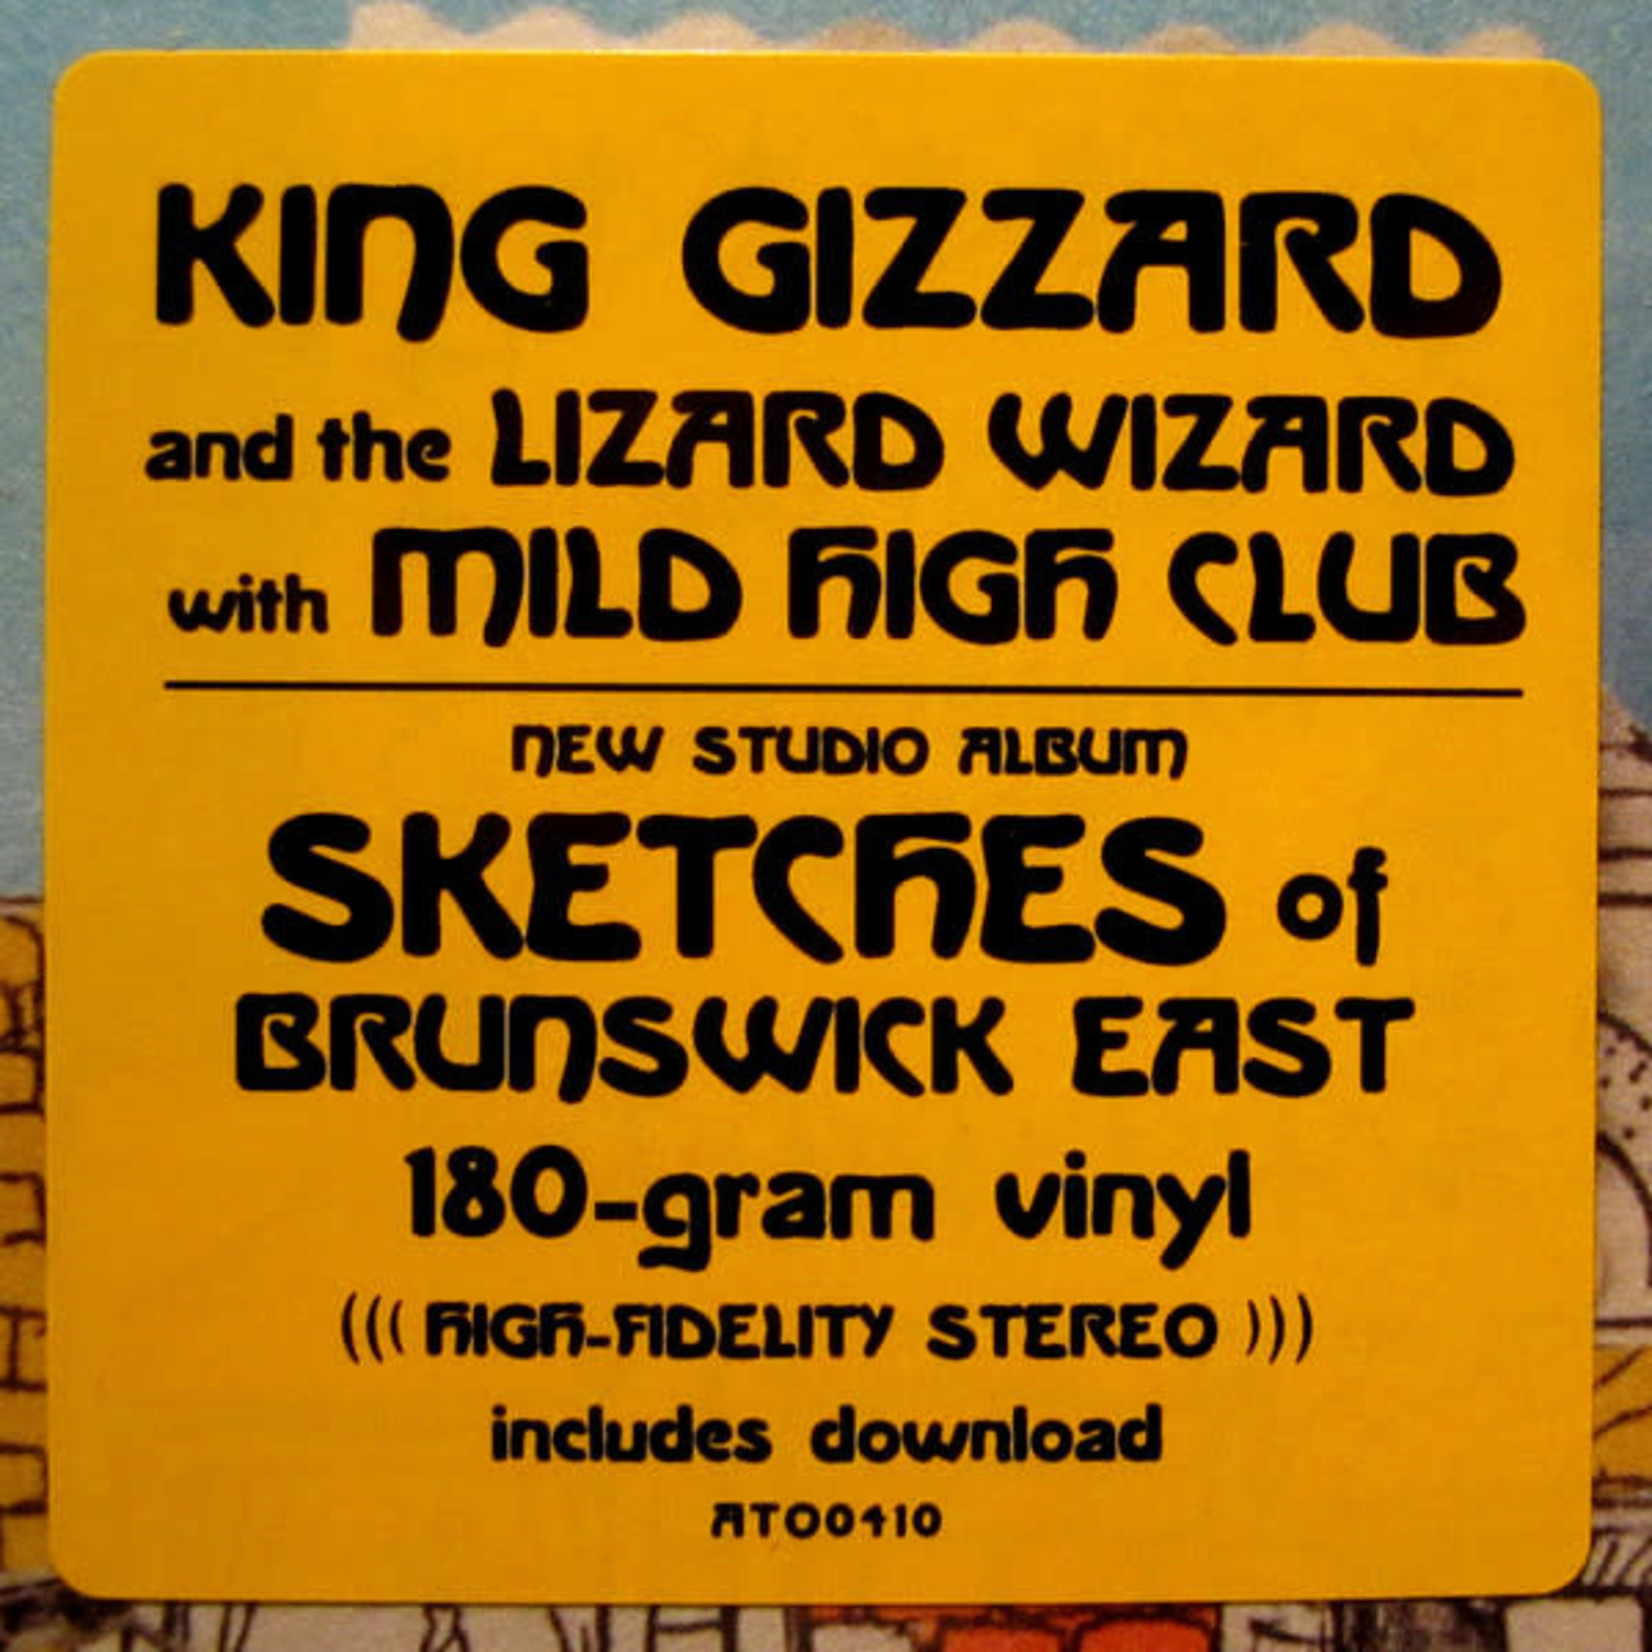 KING GIZZARD & THE LIZARD WIZARD SKETCHES OF BRUNSWICH EAST